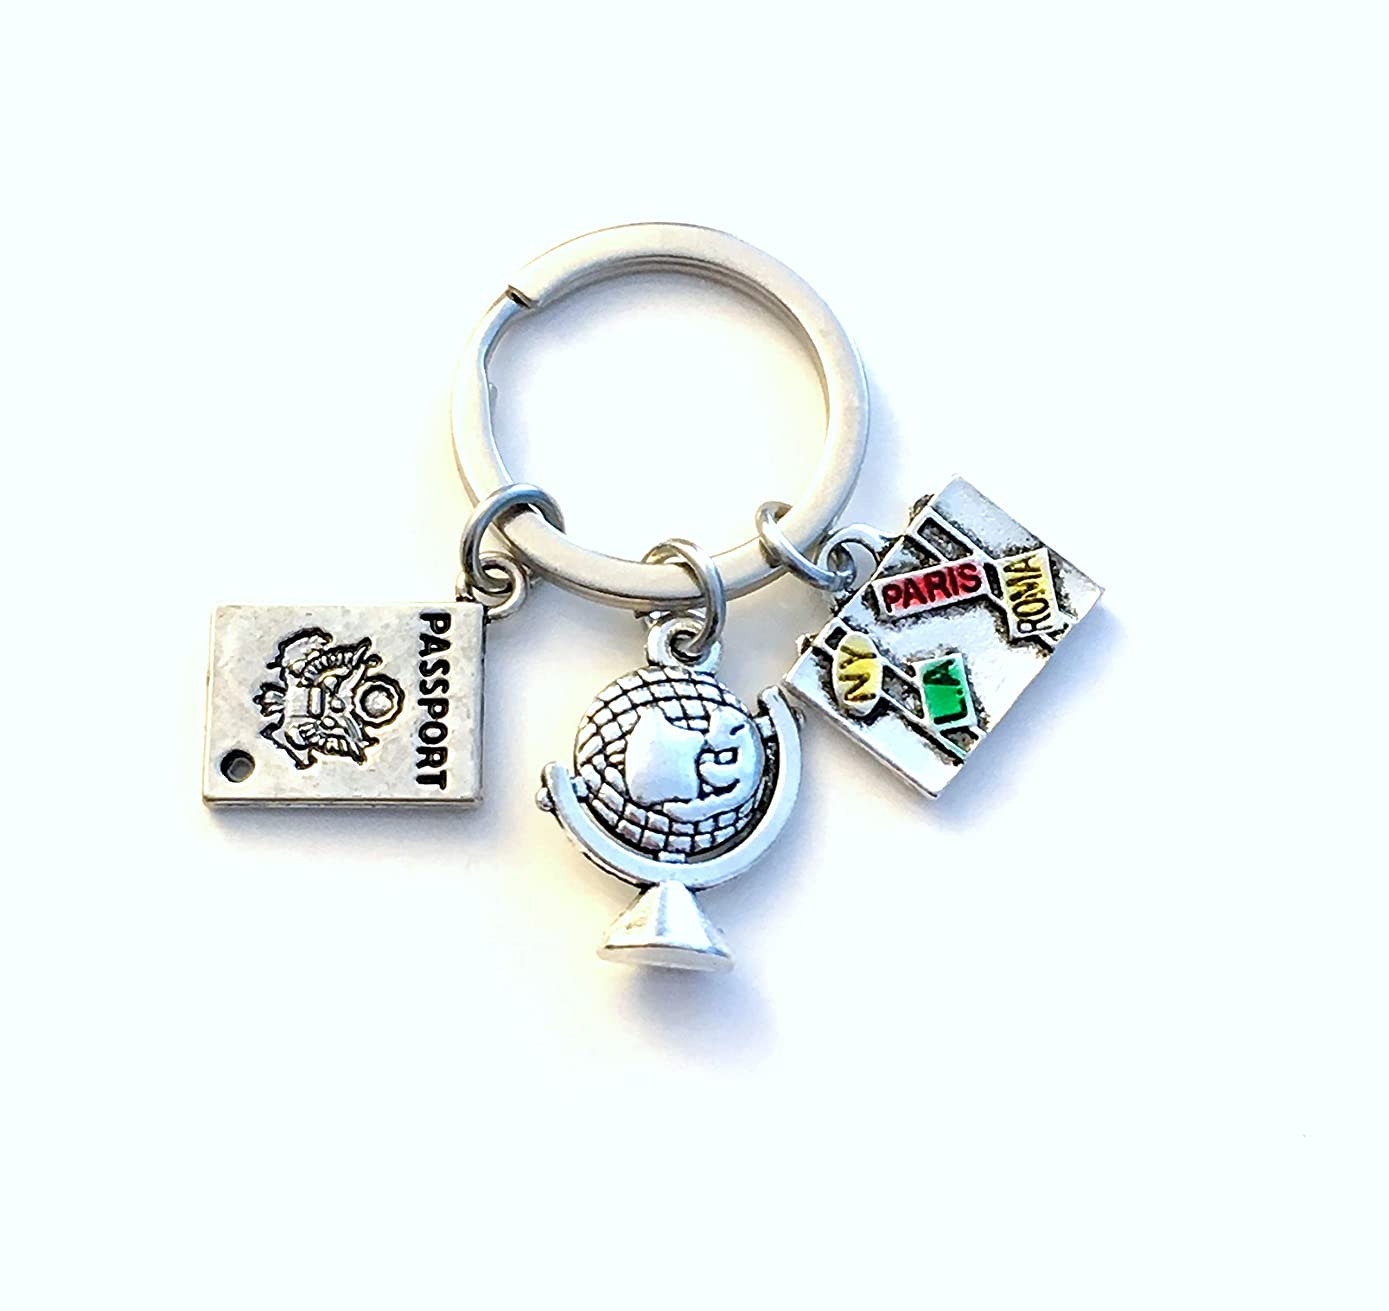 Travel Keychain, World Traveler Key Chain, Going away present for Women Men, Gift for Flight Attendant or Pilot Keyring, Suitcase, Globe, and Passport Charm, Best Friend BFF New License